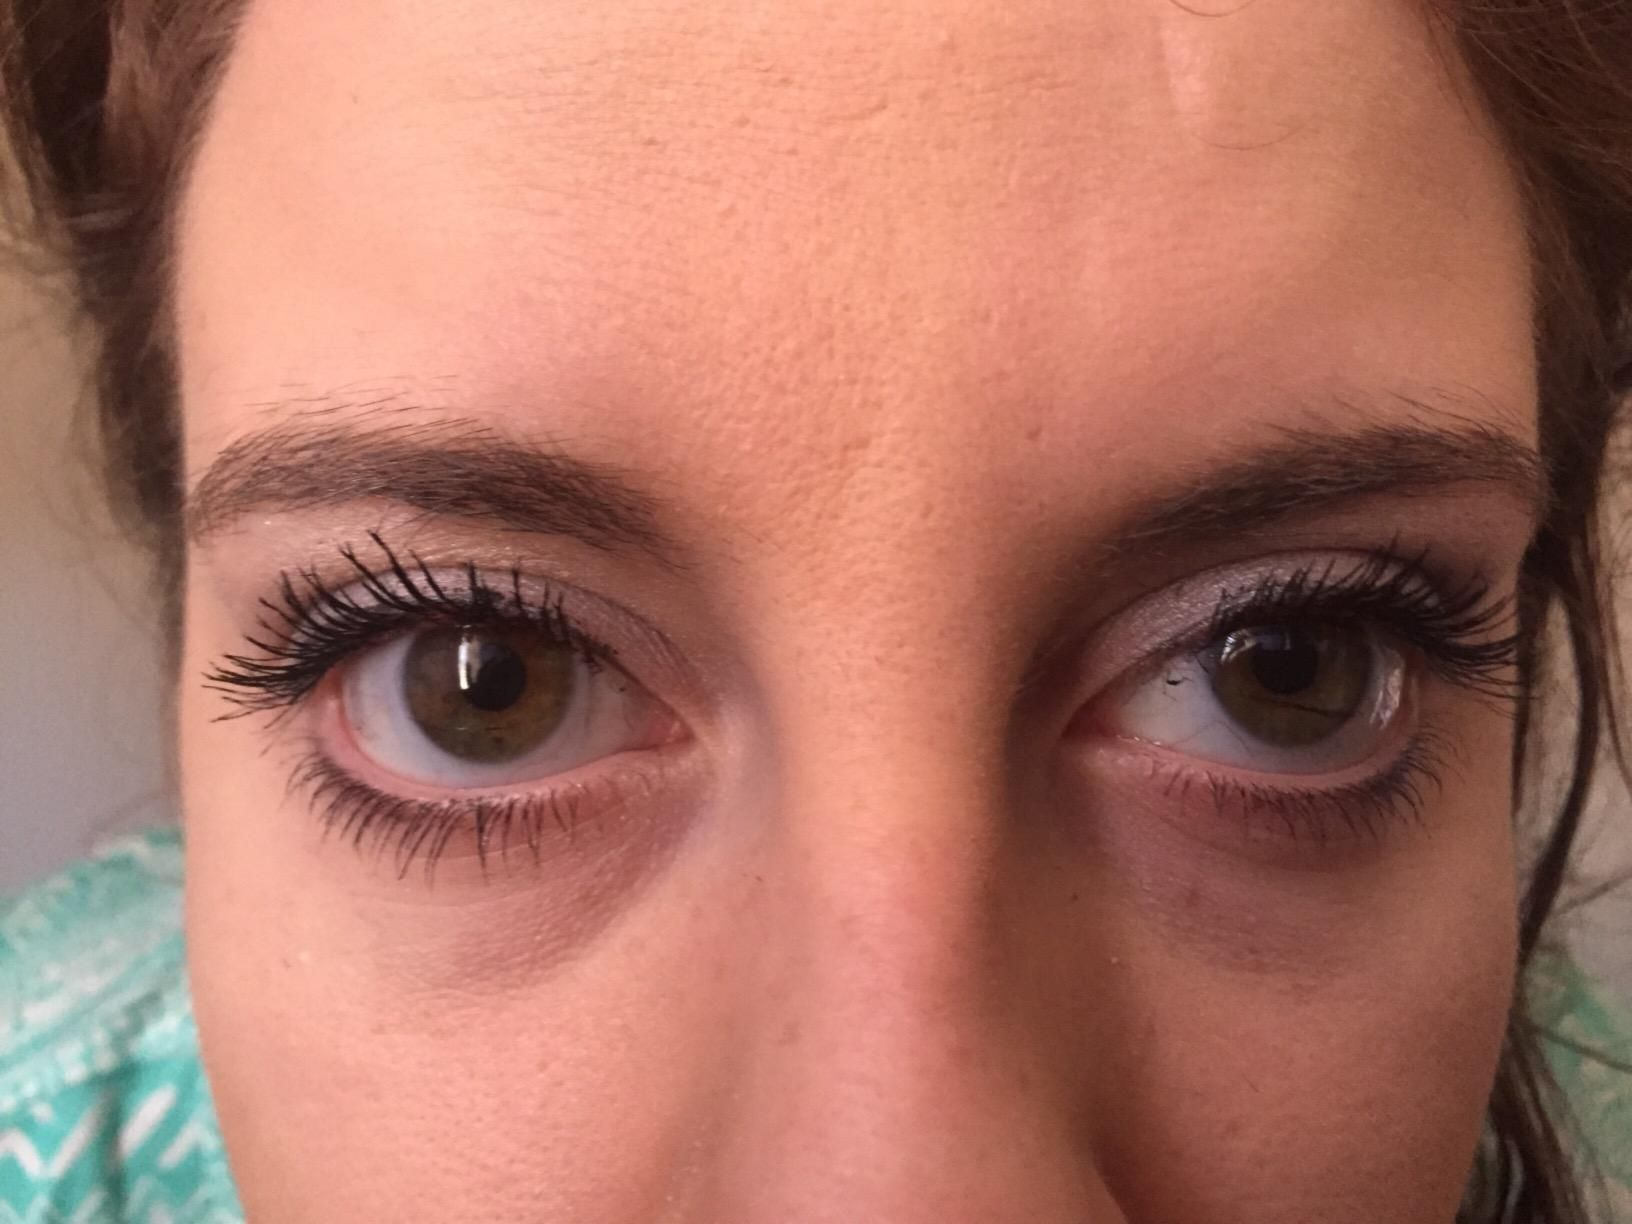 The actual result of using 3D Fiber Mascara by Lash Factory